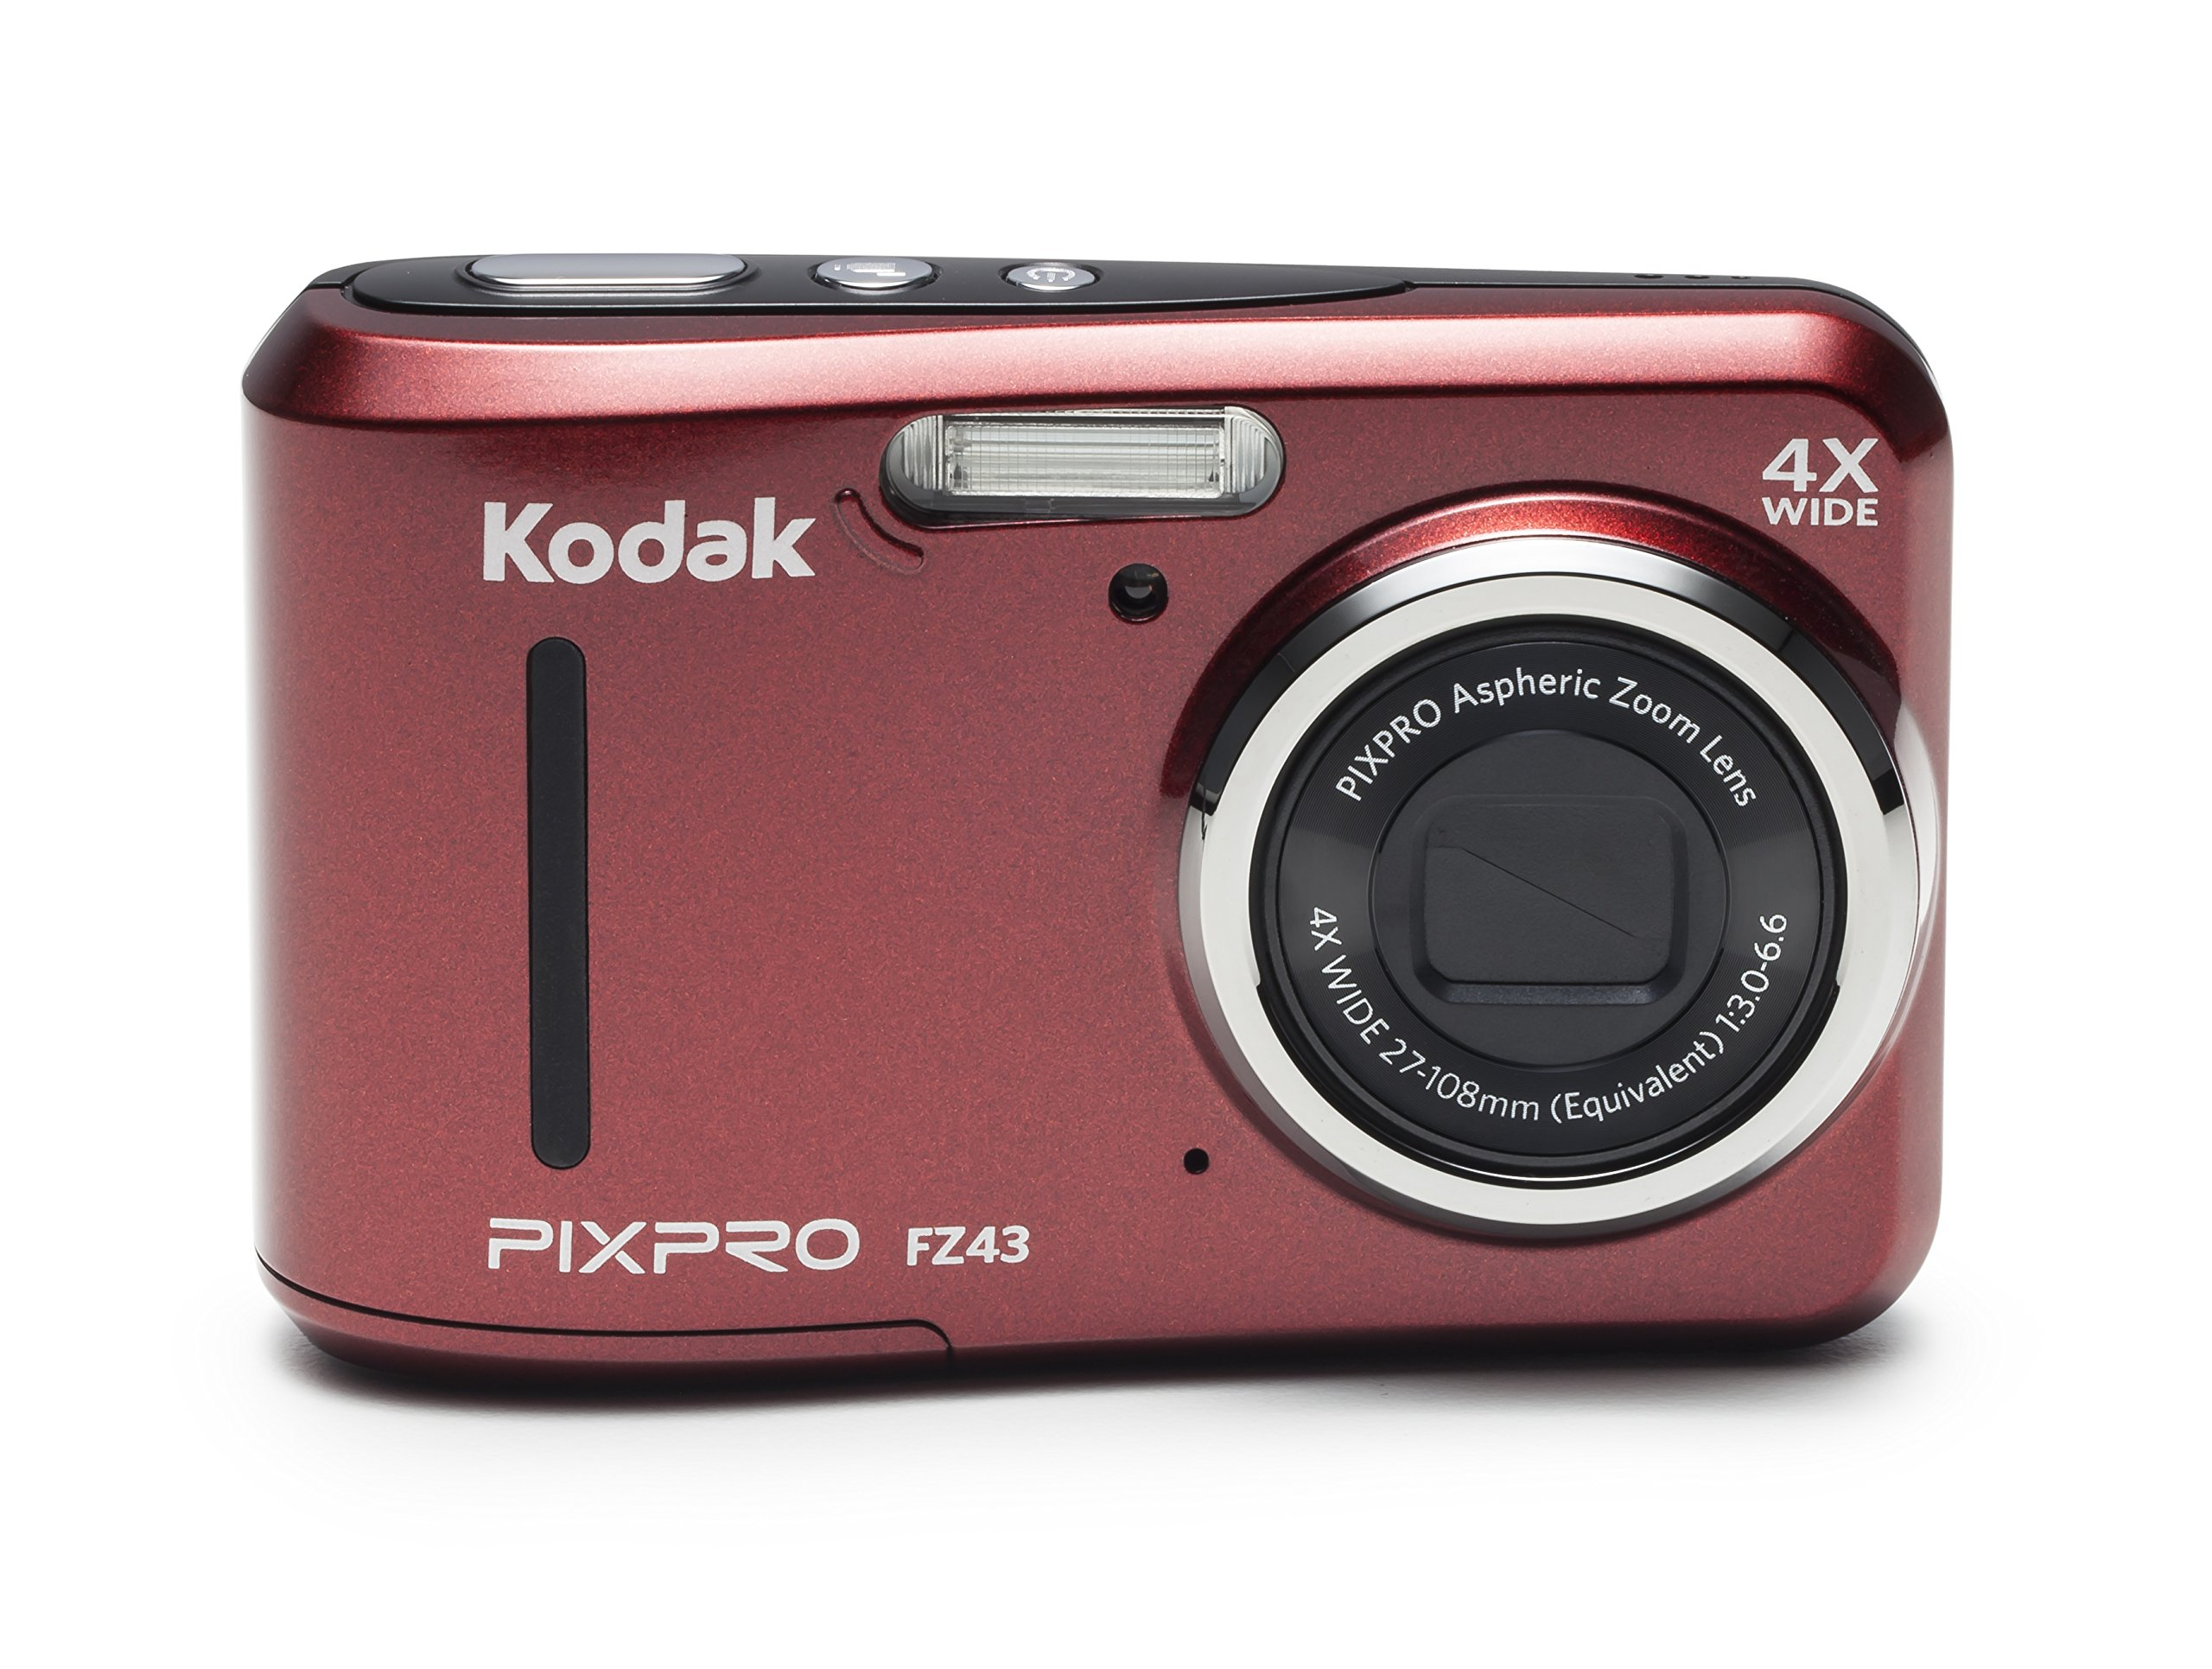 Kodak PIXPRO Friendly Zoom FZ43-RD 16MP Digital Camera with 4X Optical Zoom and 2.7'' LCD Screen (Red)